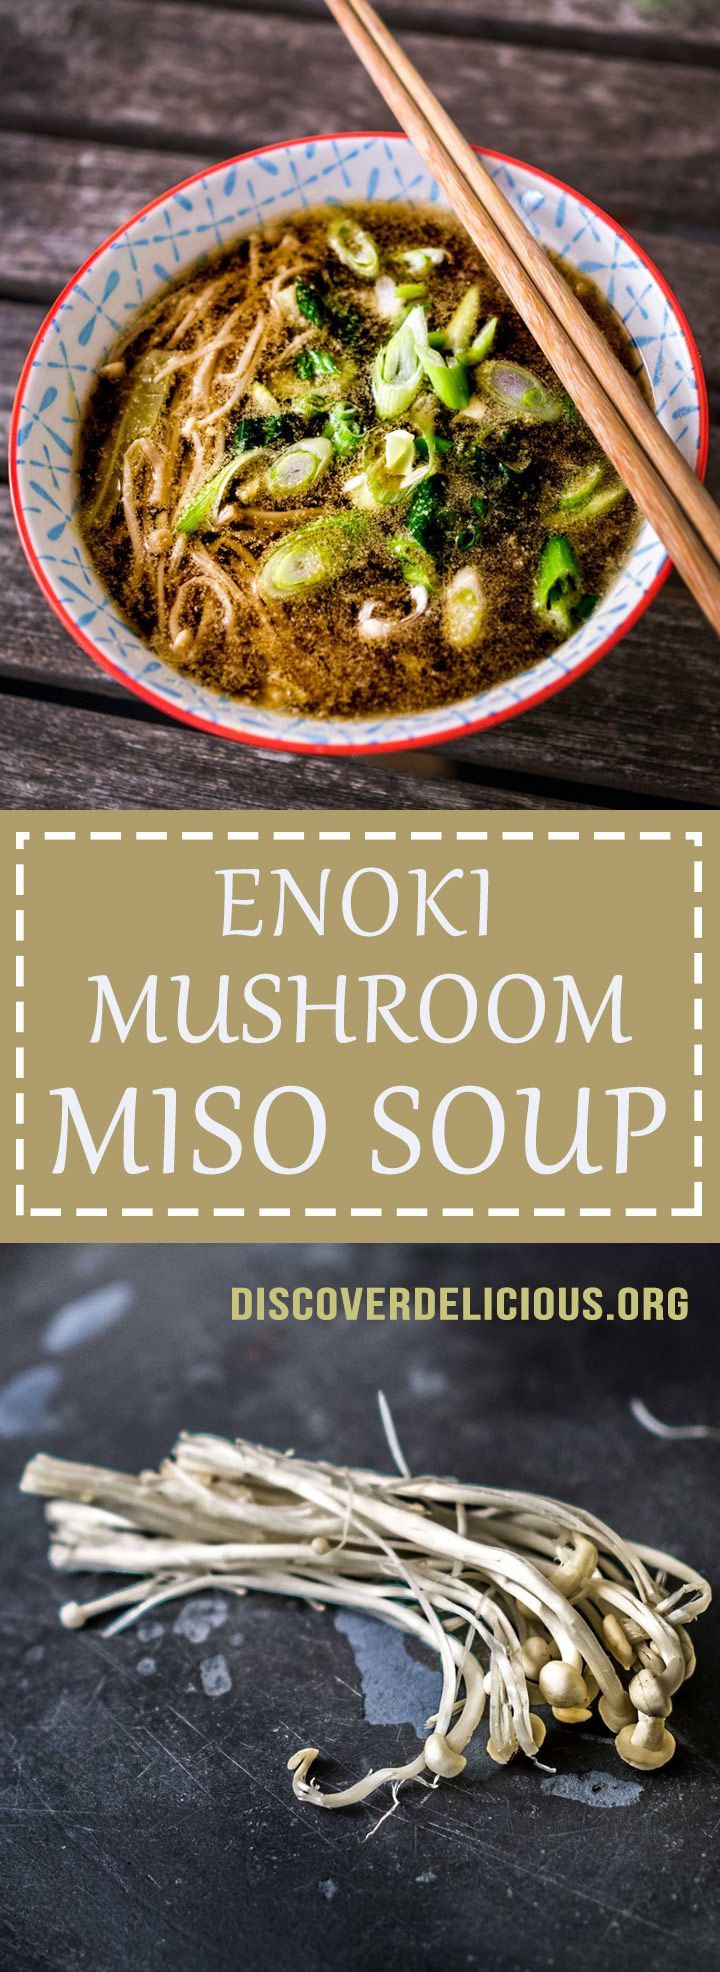 Enoki mushroom miso soup | Discover Delicious | www.discoverdelicious.org | Vegan Food Blog